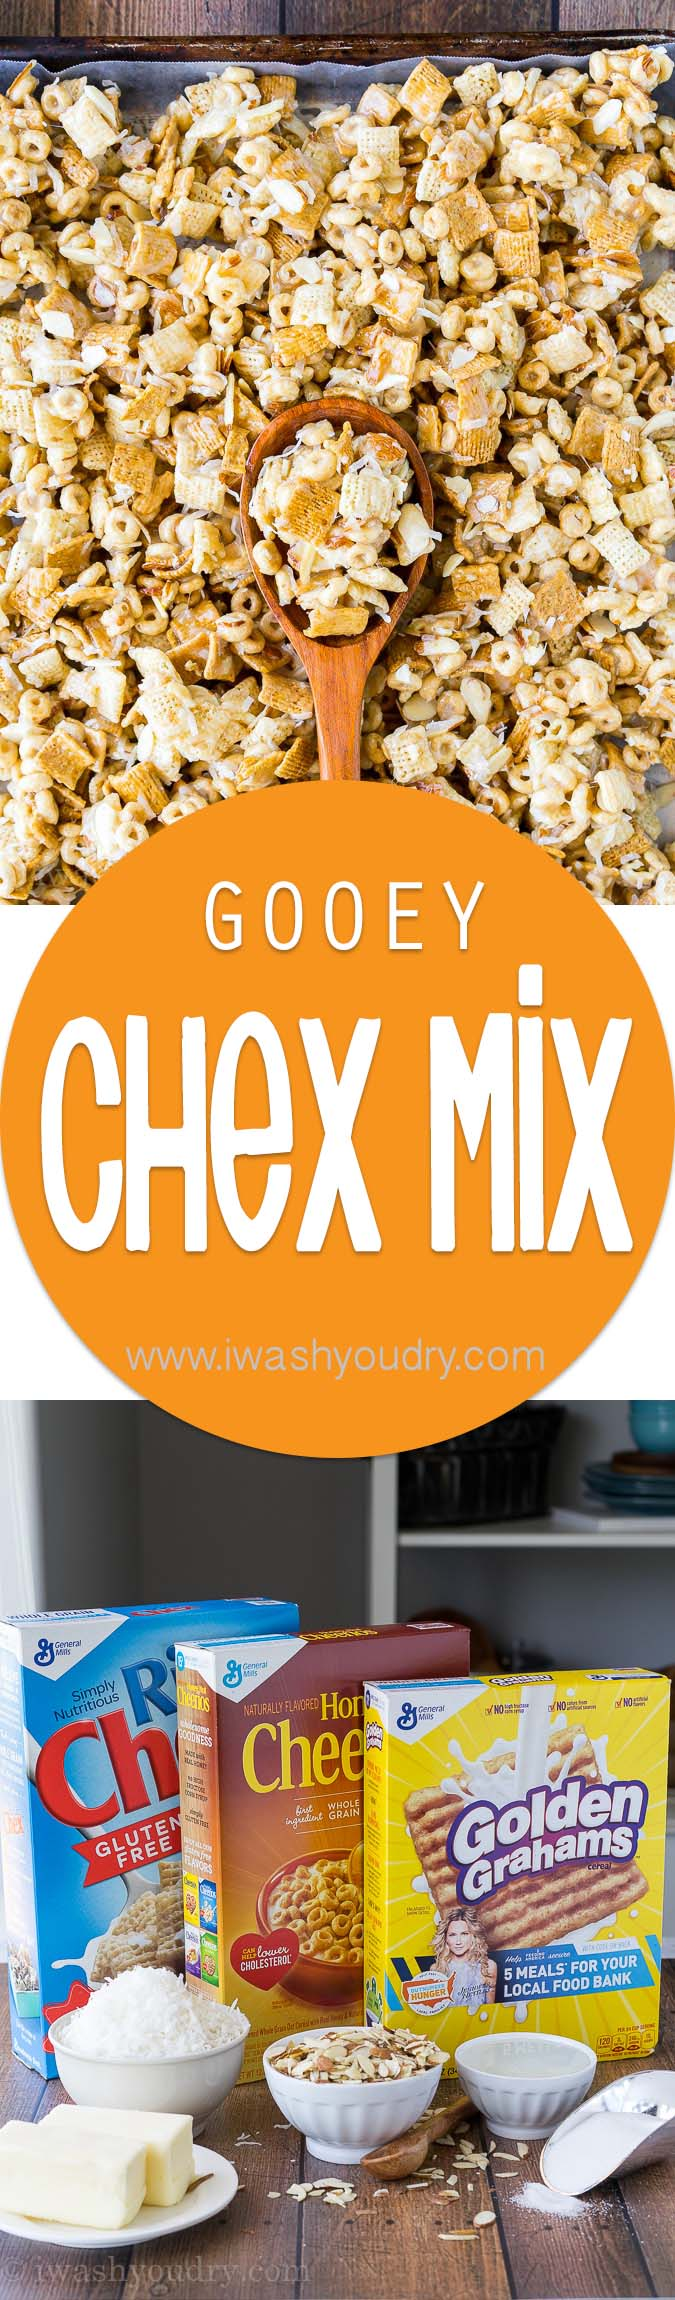 We love this Gooey Chex Mix recipe for snacks and parties!